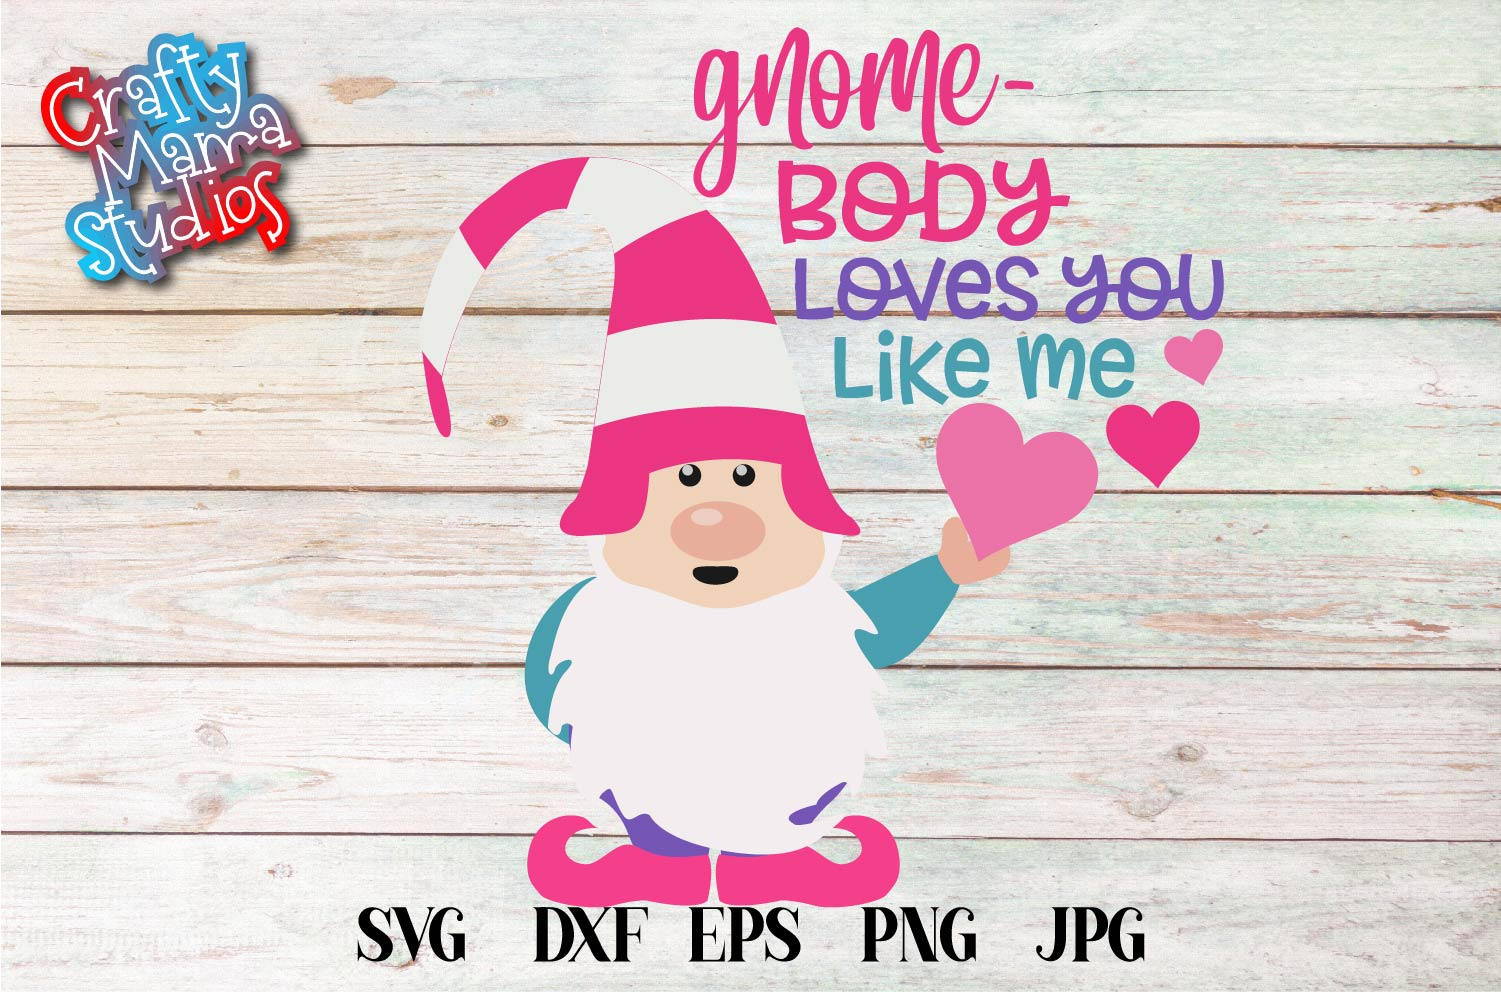 Valentine's Day SVG Valentine Gnome Body Loves You Like Me example image 2